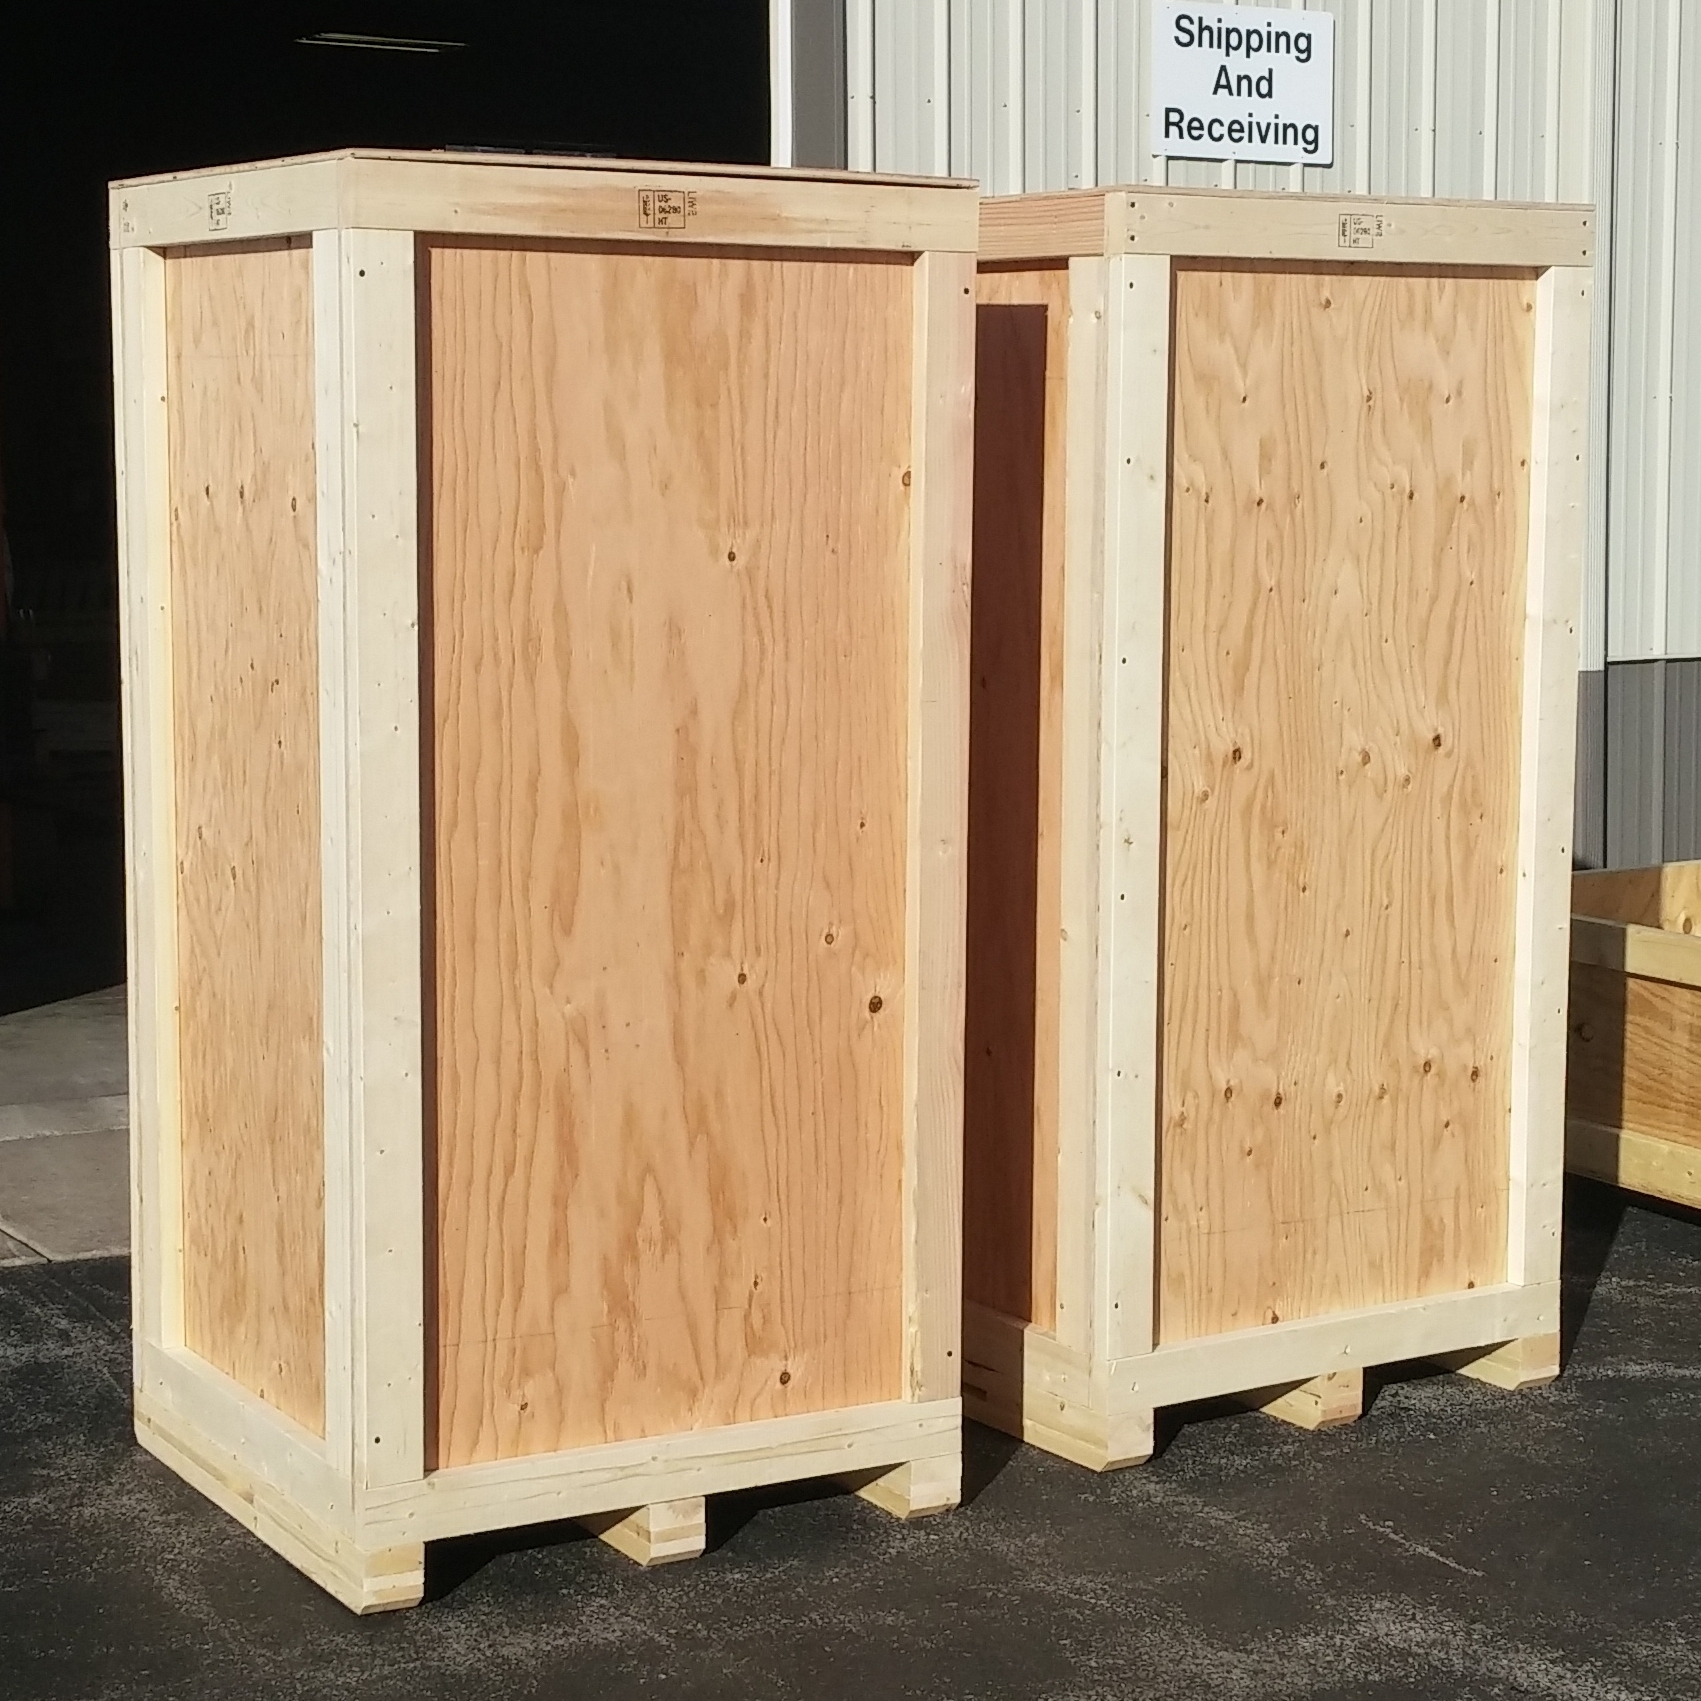 Durable and good looking - Our crates present very well. They do their job and are always strong. No worries for us, or more importantly, you.That's how we like it, and that's what you pay for in a Specialty Crate Factory product.